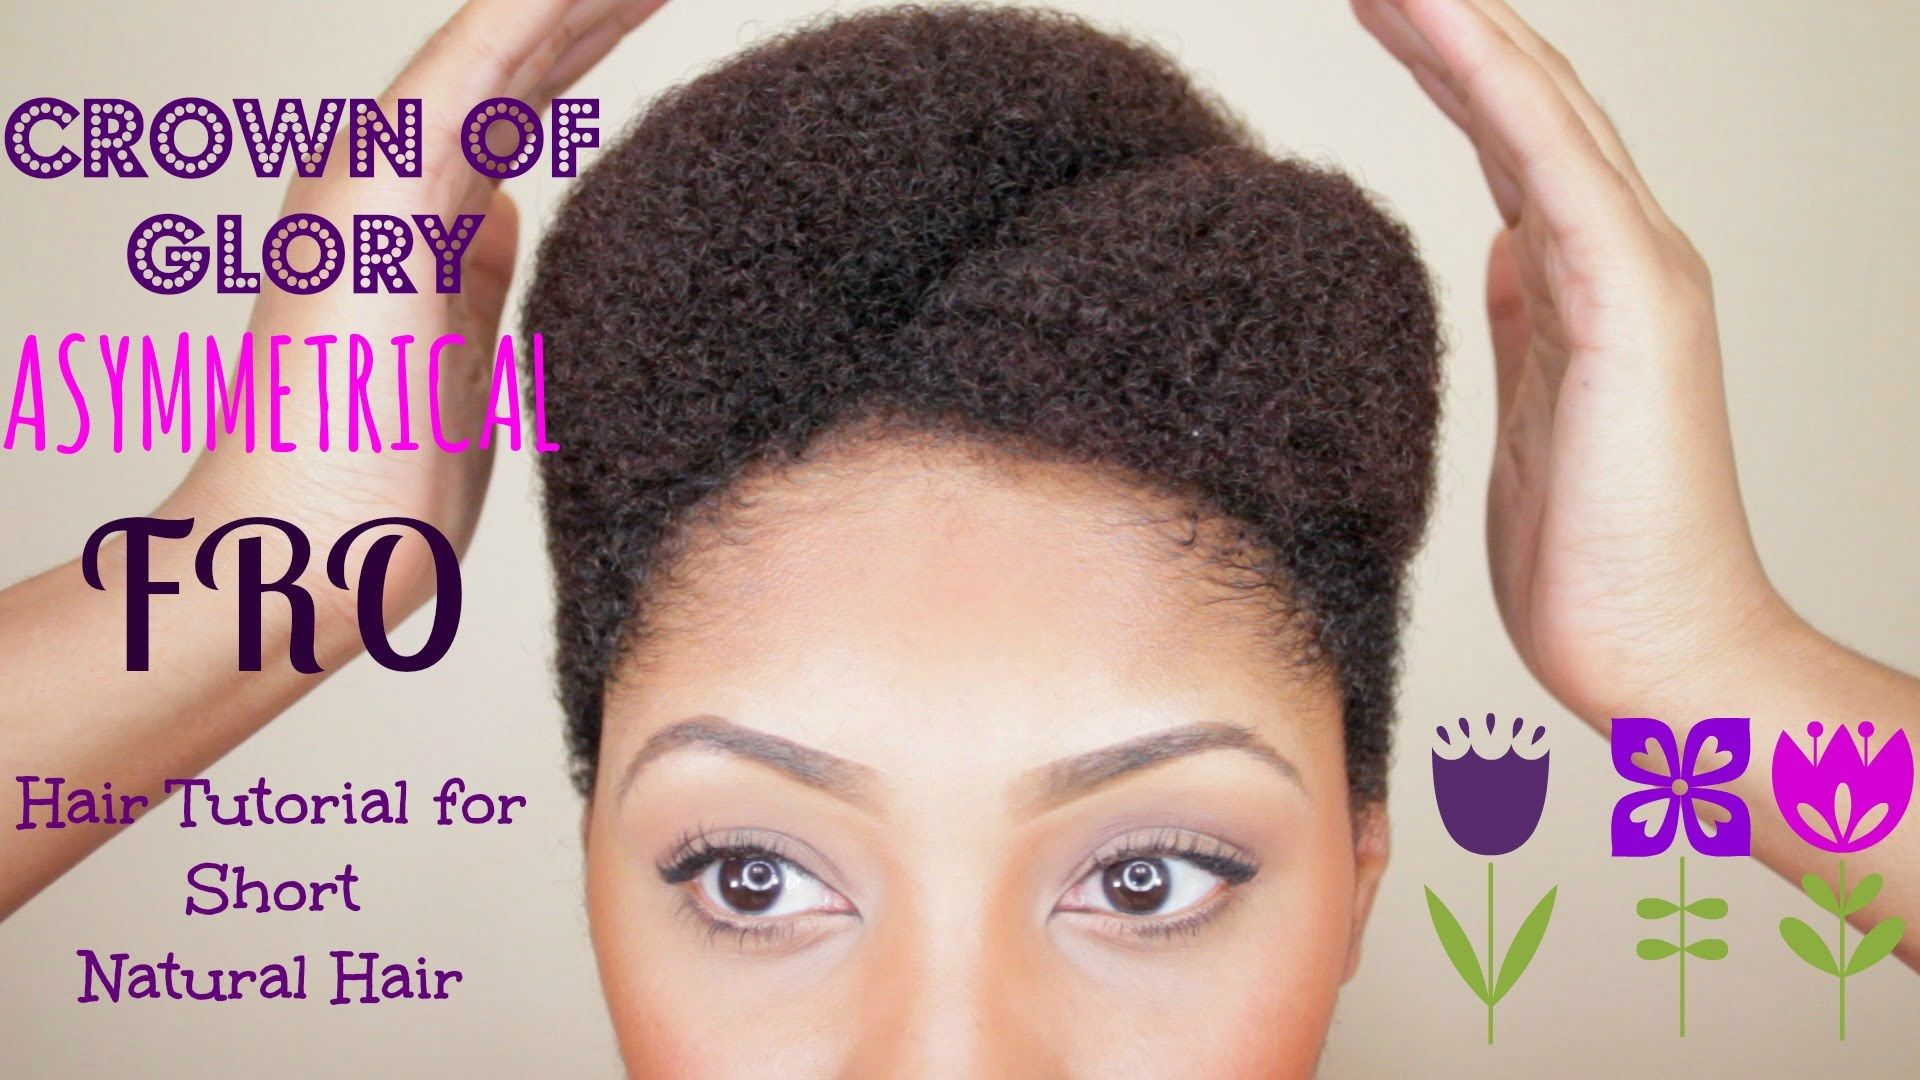 Asymmetrical afro tutorial for short natural hair hair stuff